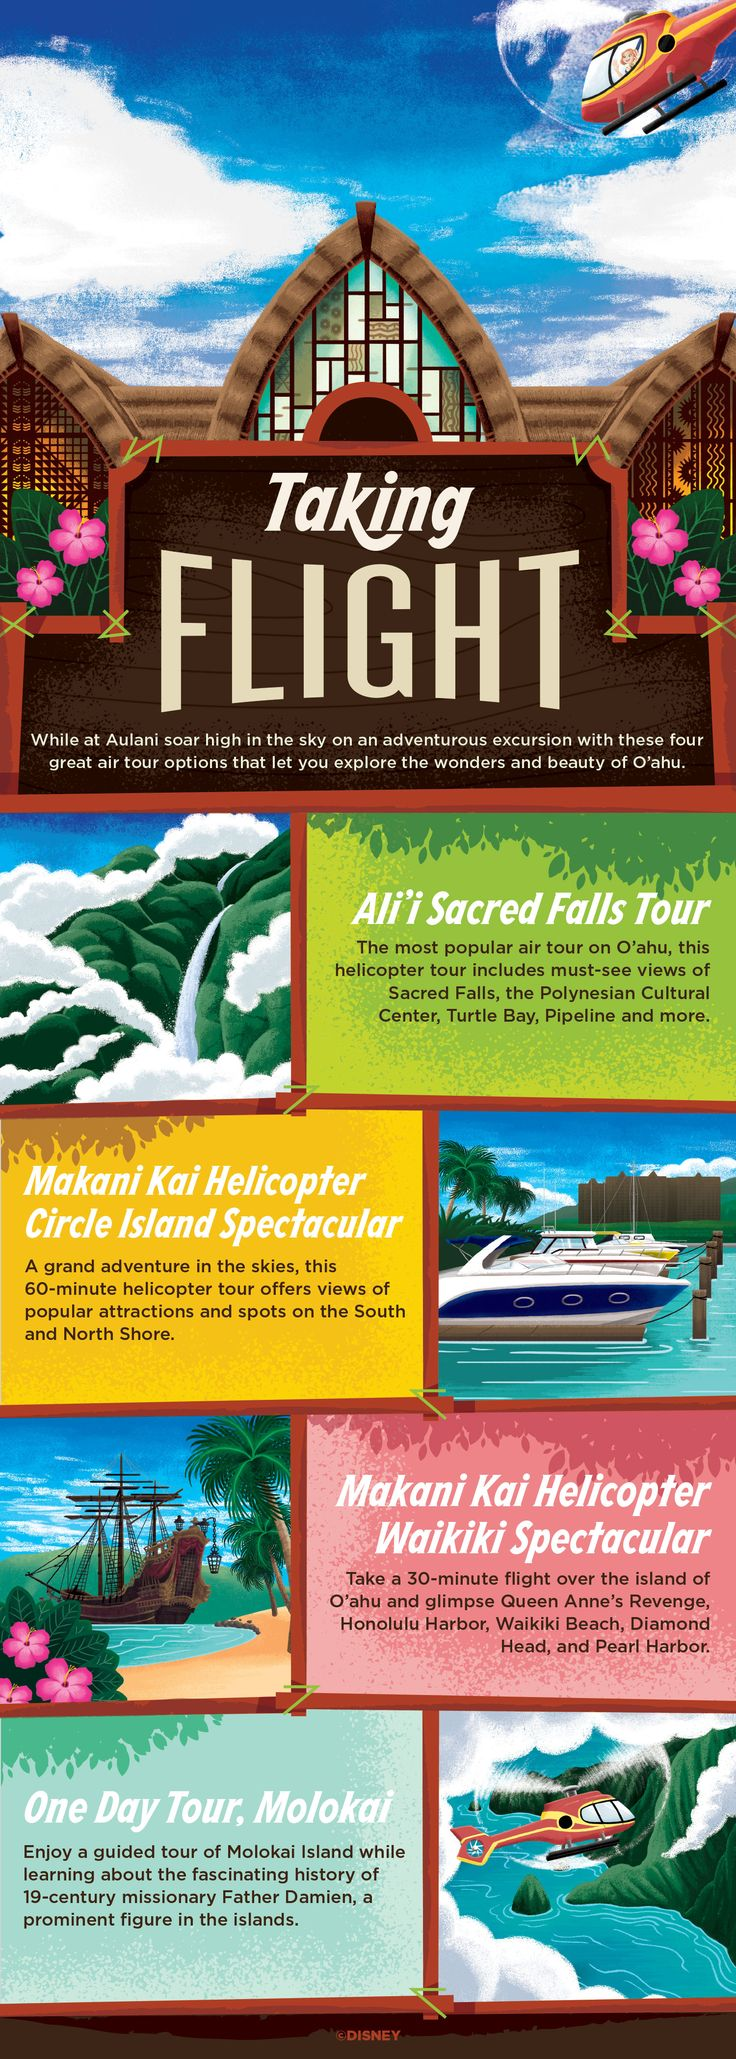 While at Aulani, set forth on a guided tour that takes you to some of the most spectacular sights on O'ahu including Waimea Falls and Diamond Head Crater!